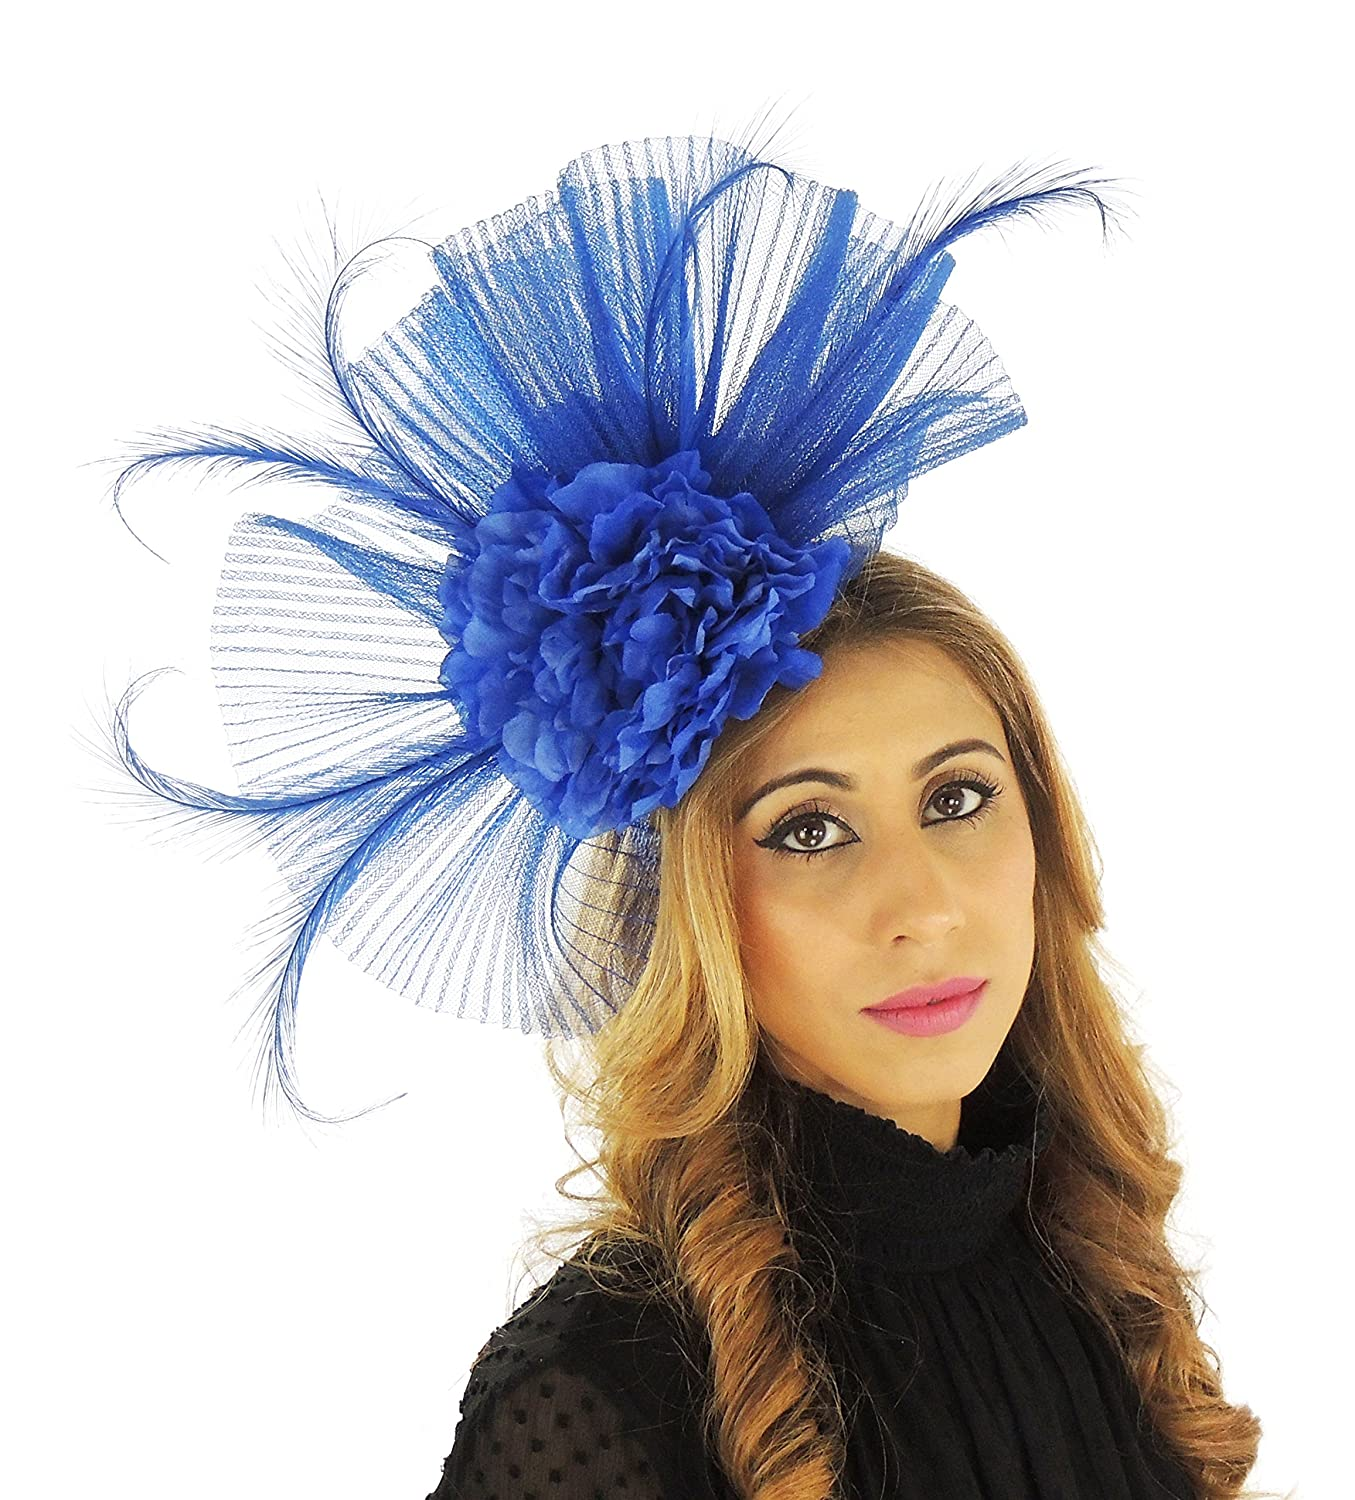 Hats By Cressida 12 Inch Royal Blue Ascot Fascinator Hat Headband at Amazon  Women s Clothing store  3994244b404